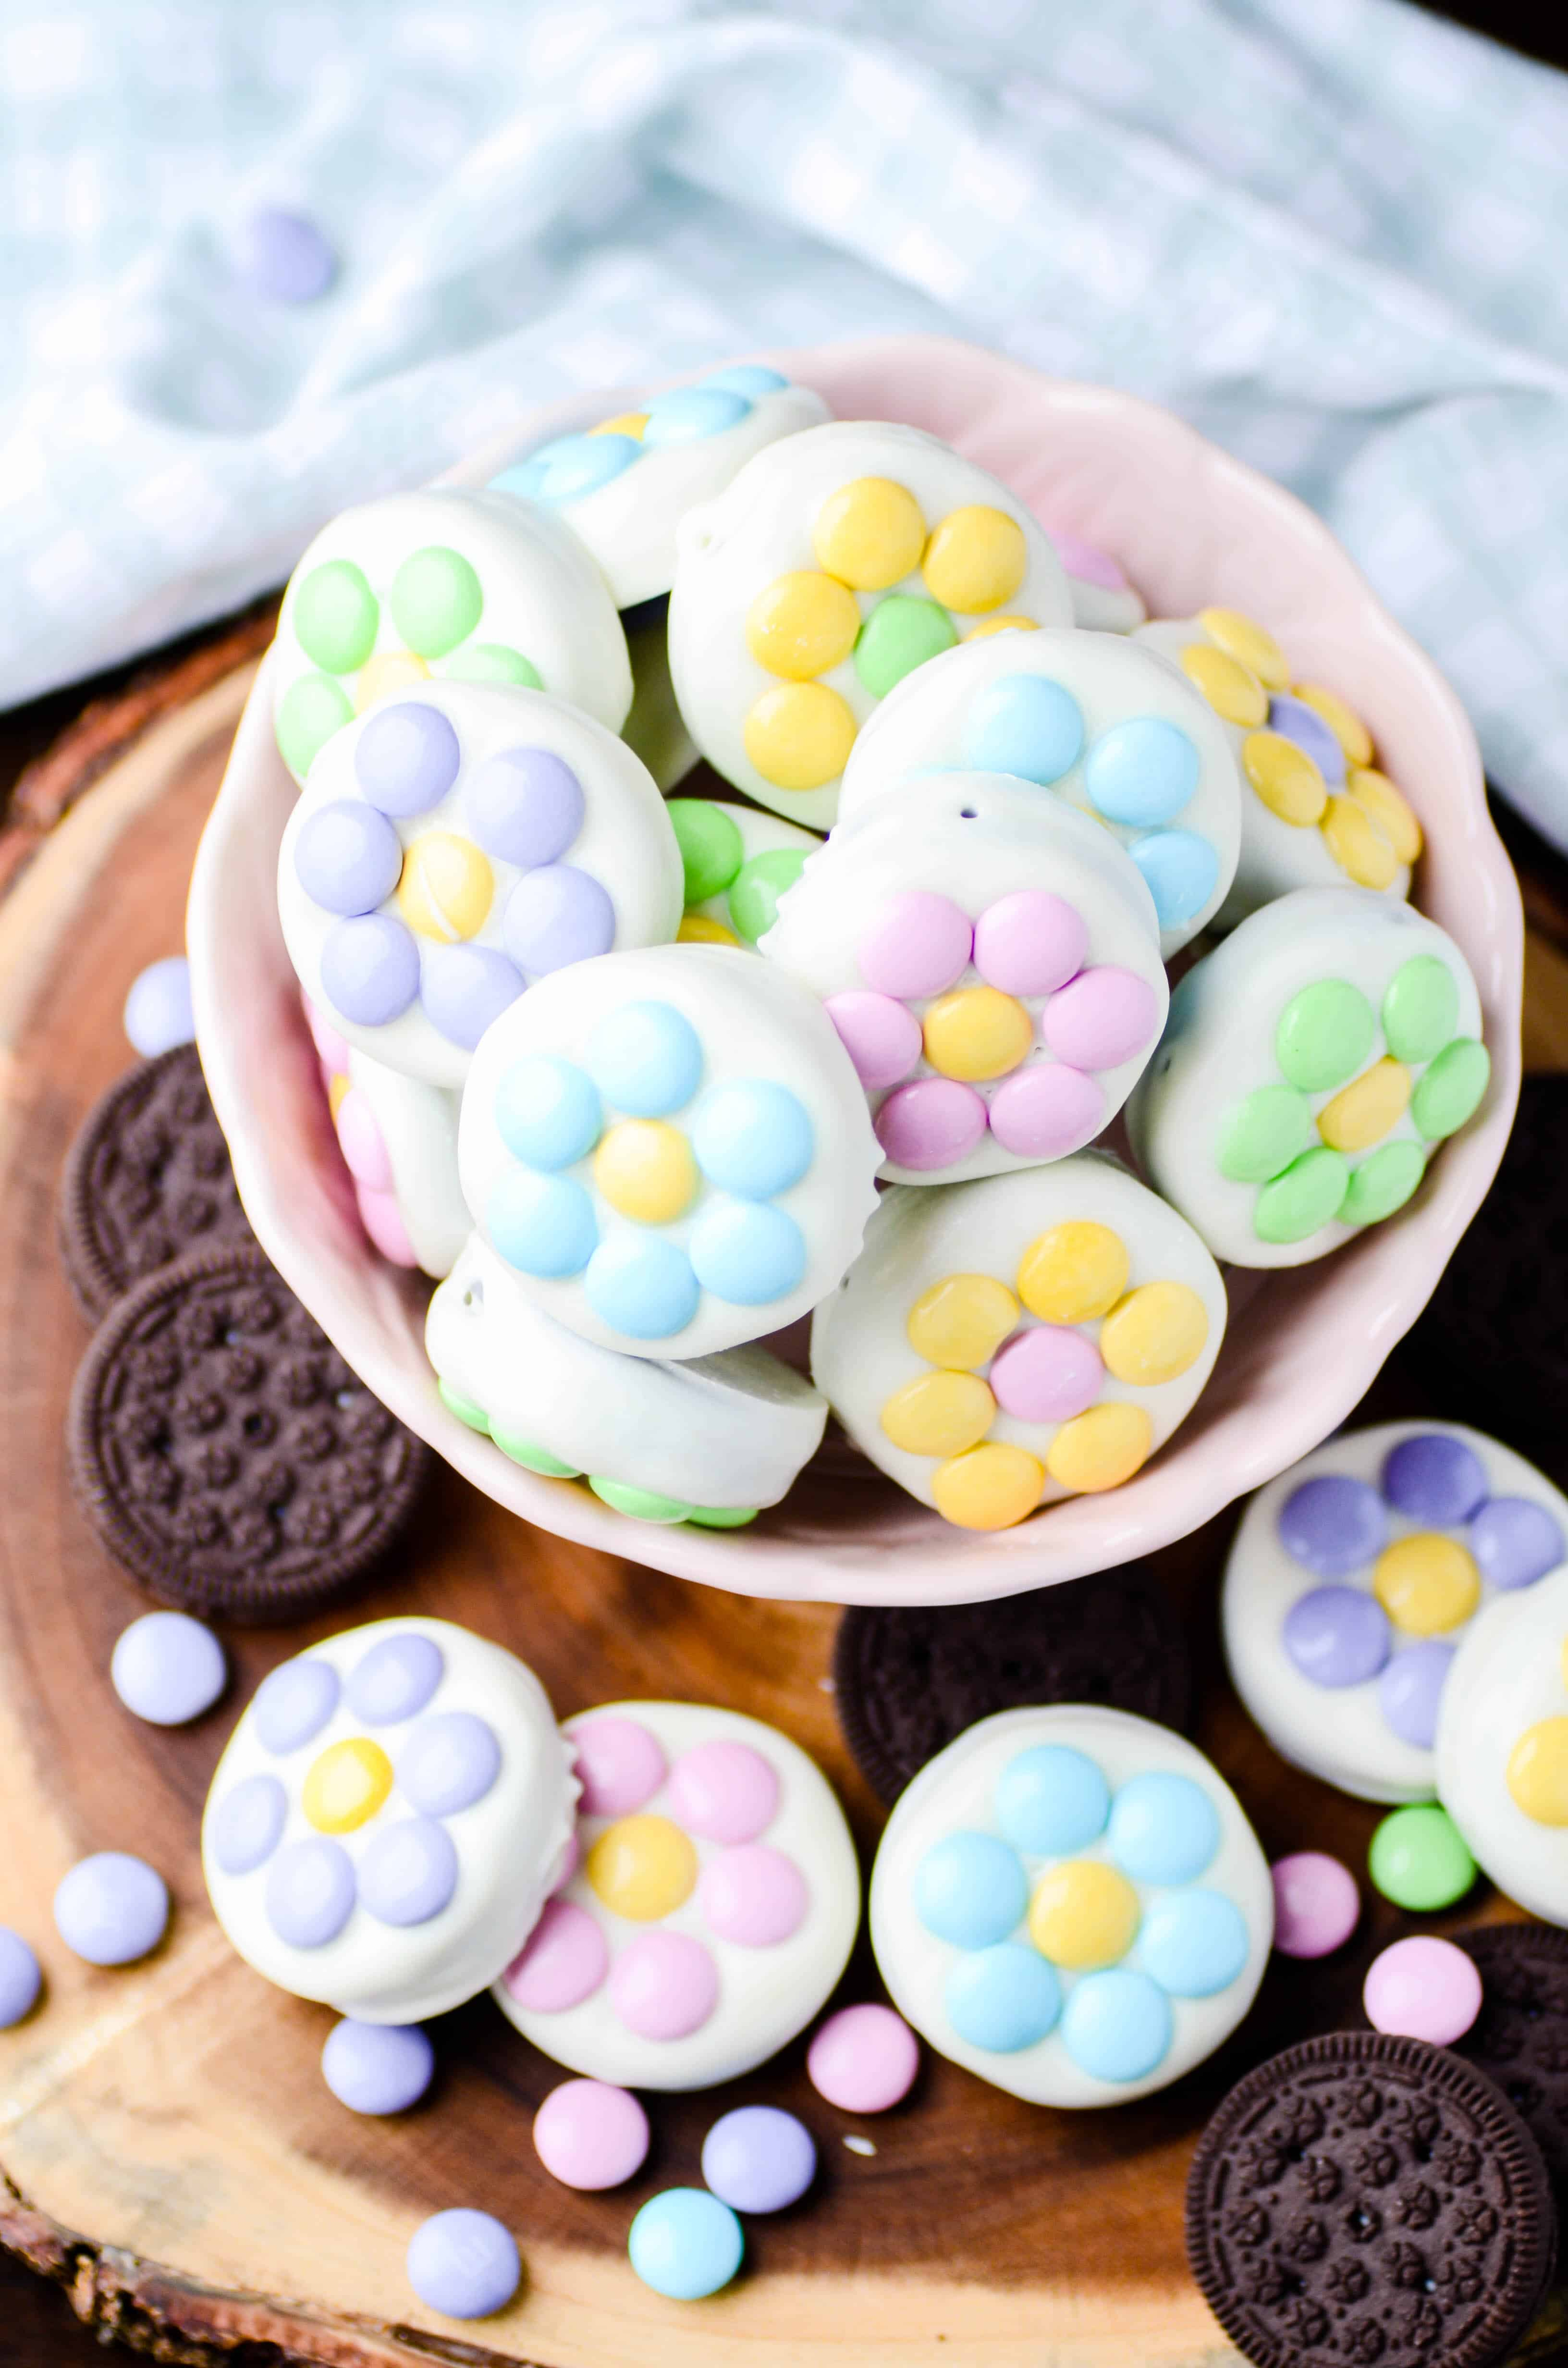 White Chocolate Covered Oreo Spring Flowers